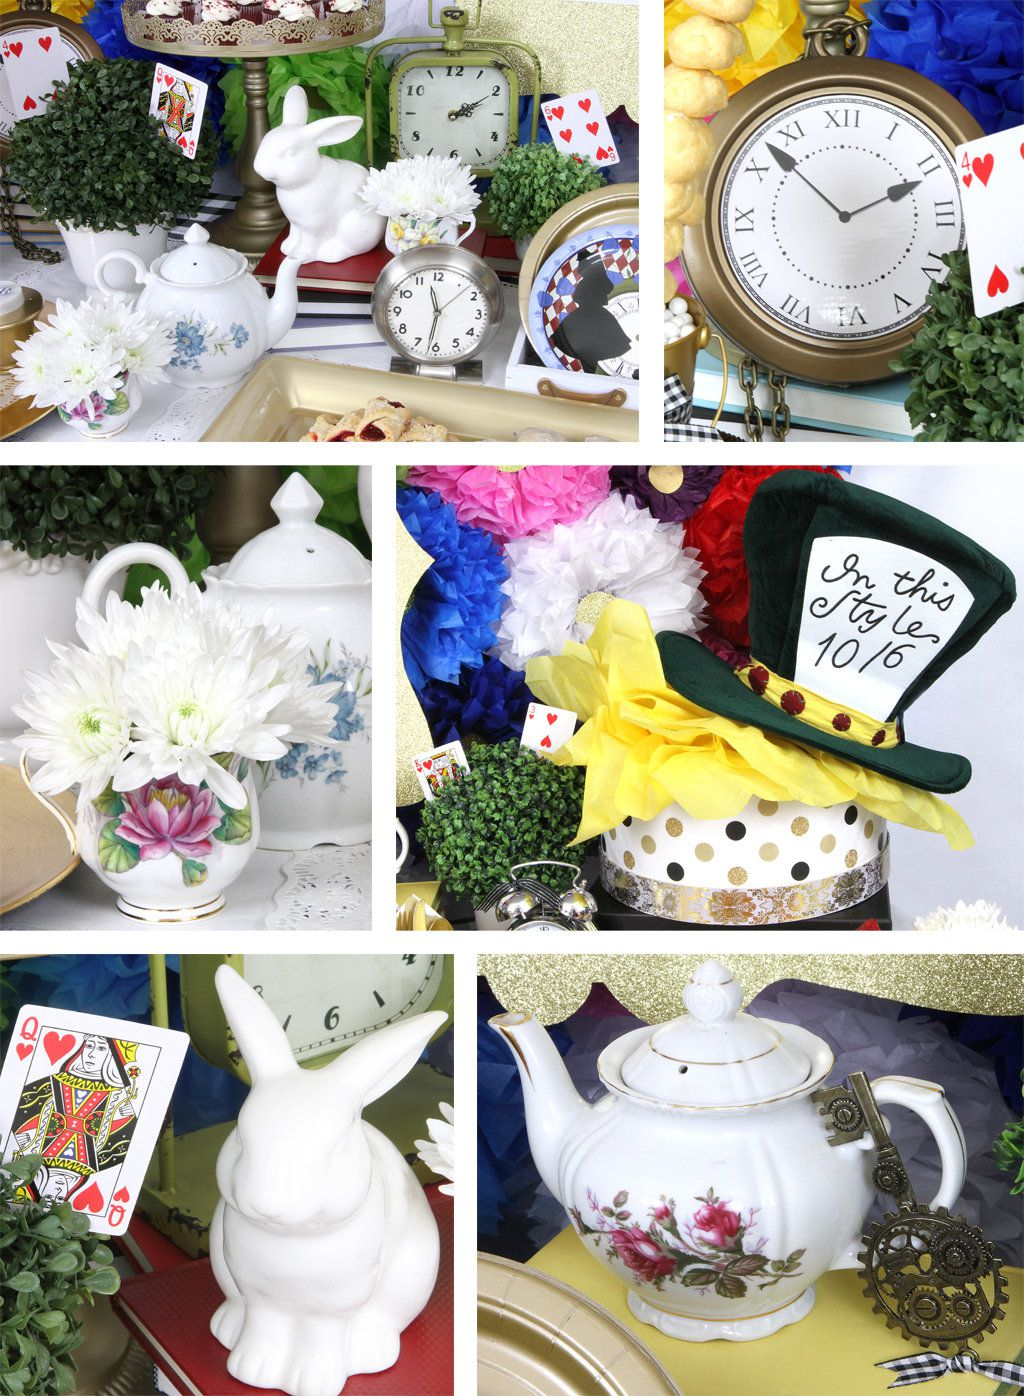 Alice in wonderland party ideas birthday in a box - Alice in the wonderland party decorations ...